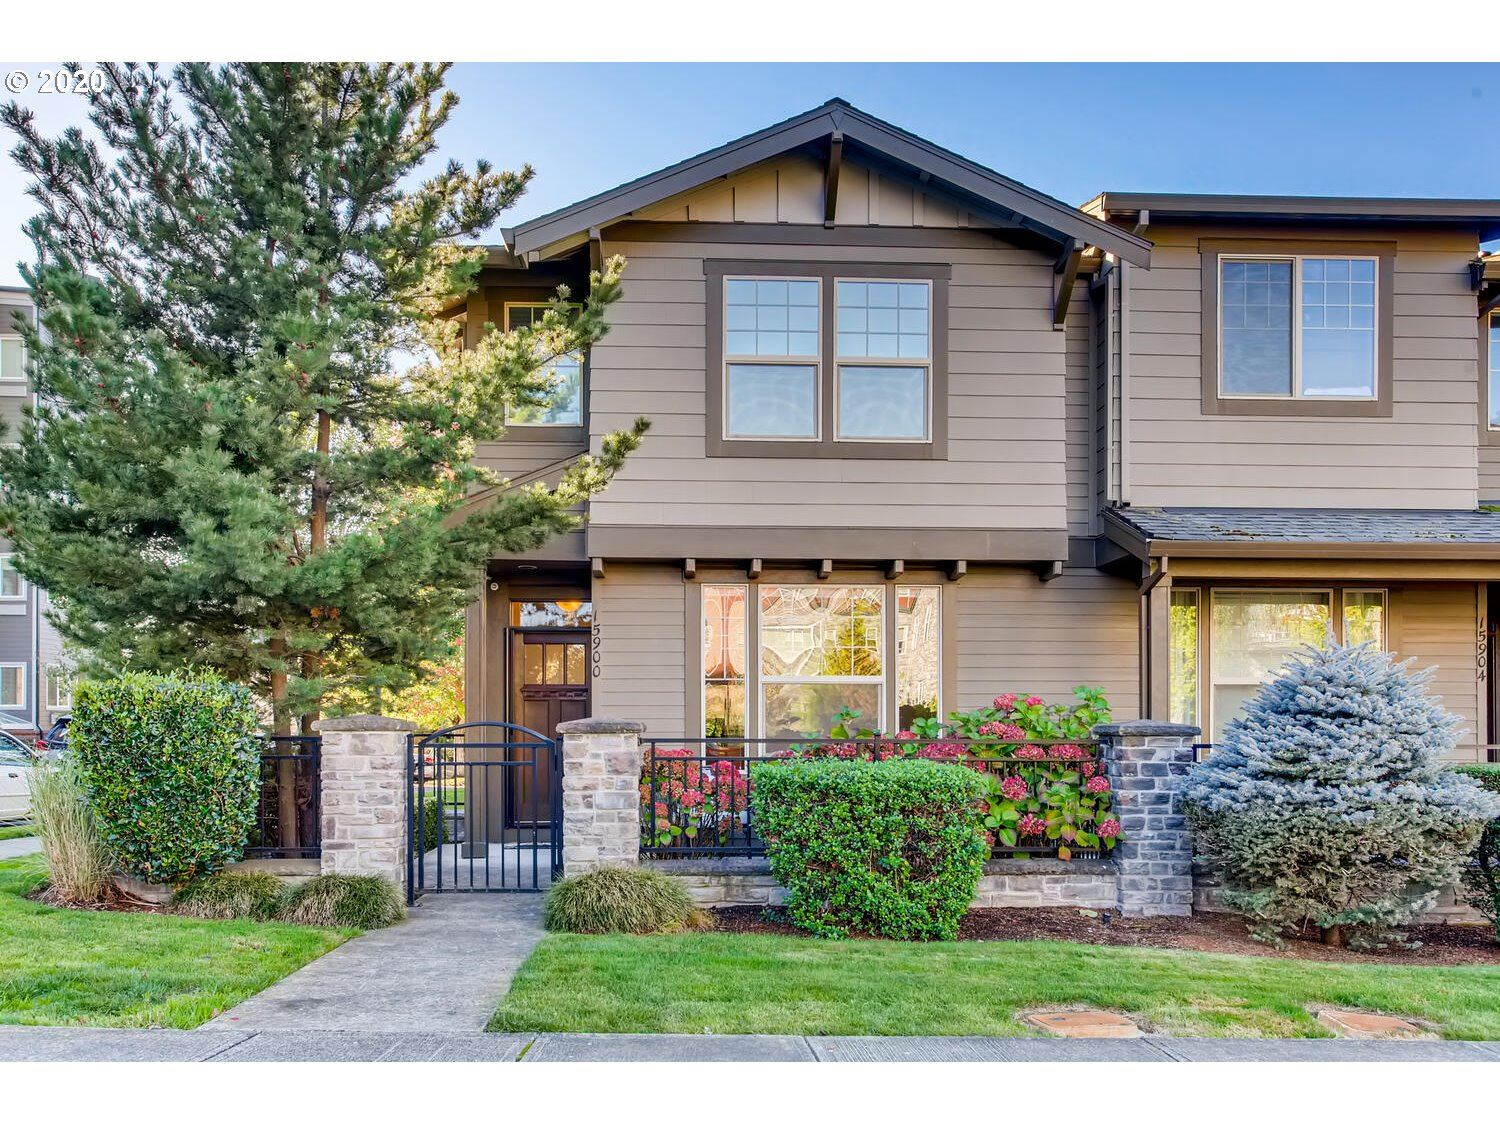 15900 NW CENTRAL DR, Portland, OR 97229 - MLS#: 20441652